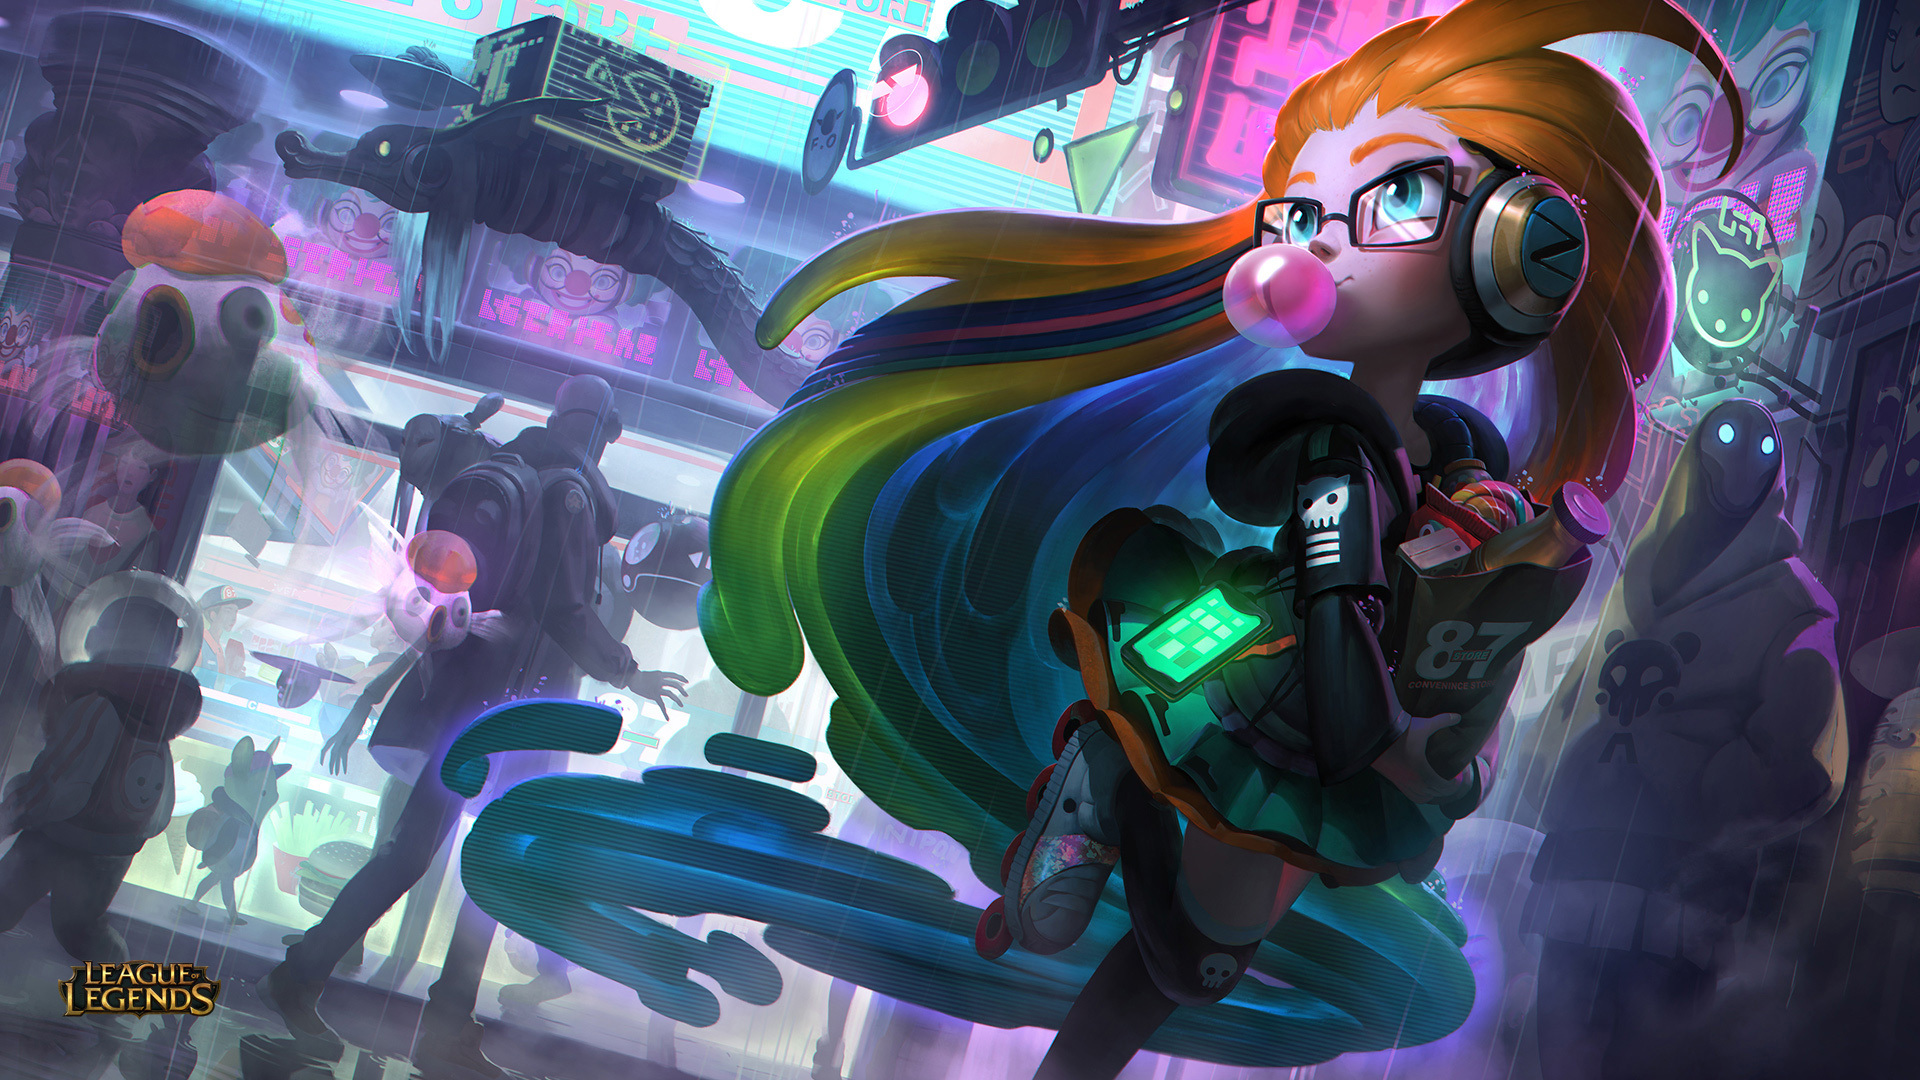 1920x1080 Cyberpop Zoe League Of Legends Laptop Full Hd